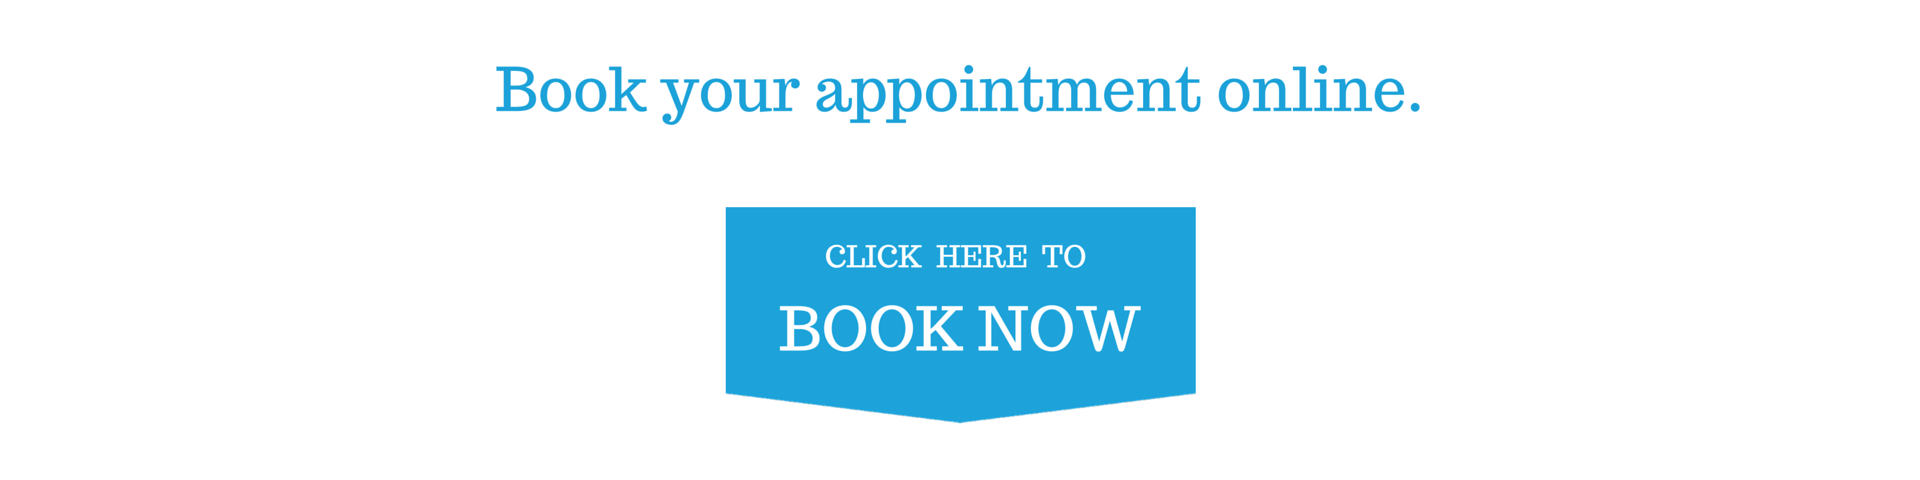 Book-your-appointment-online-1